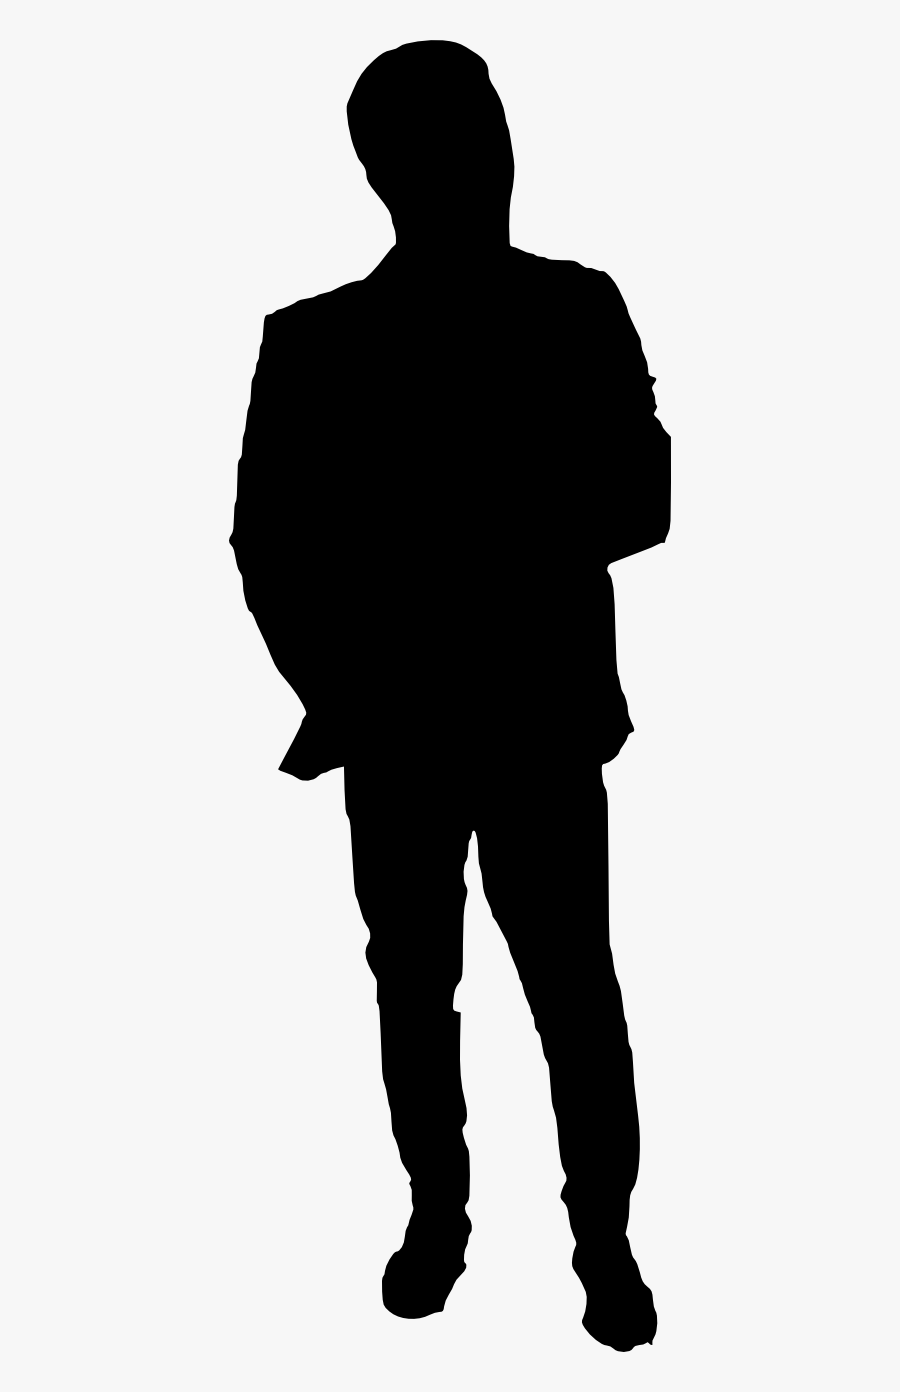 Silhouette Transparent Background : silhouette, transparent, background, Silhouette, Transparent, Background, Human, Clipart, ClipartKey